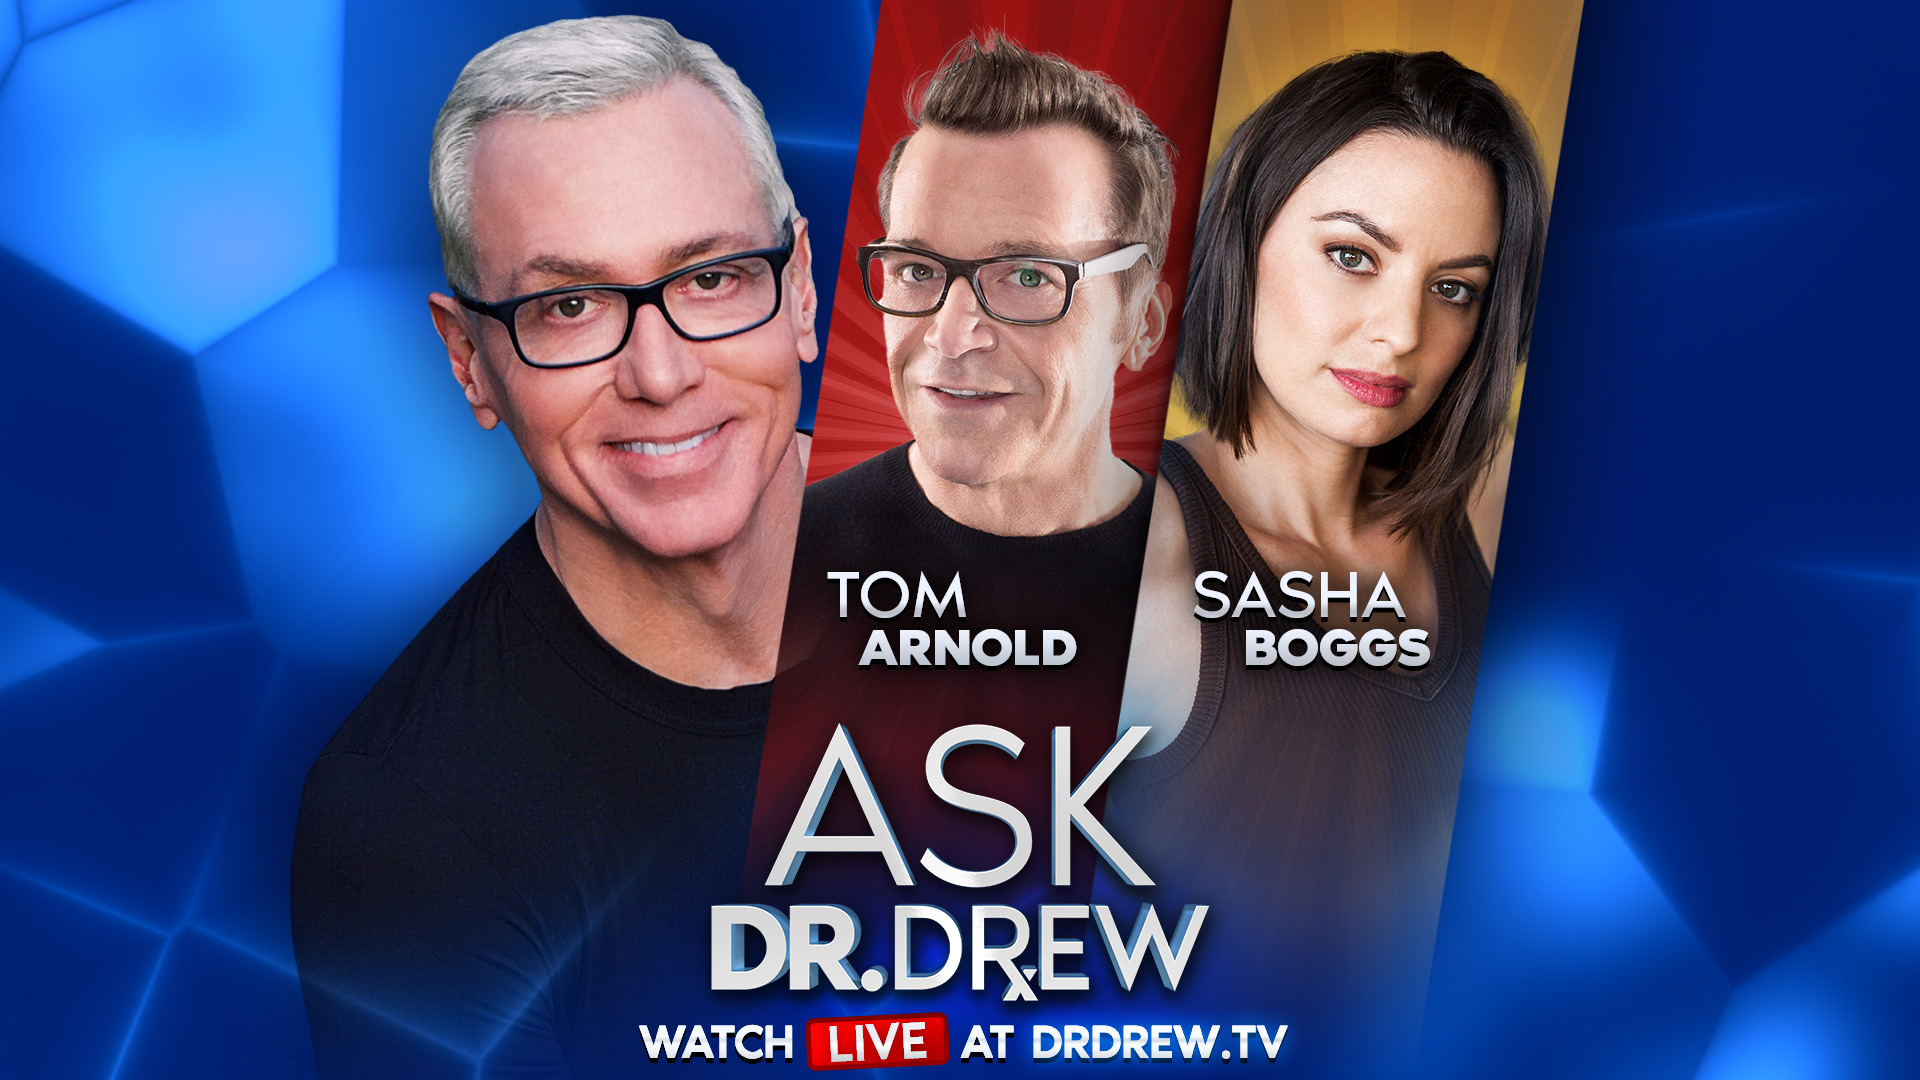 Tom Arnold & Sasha Boggs — Ask Dr. Drew